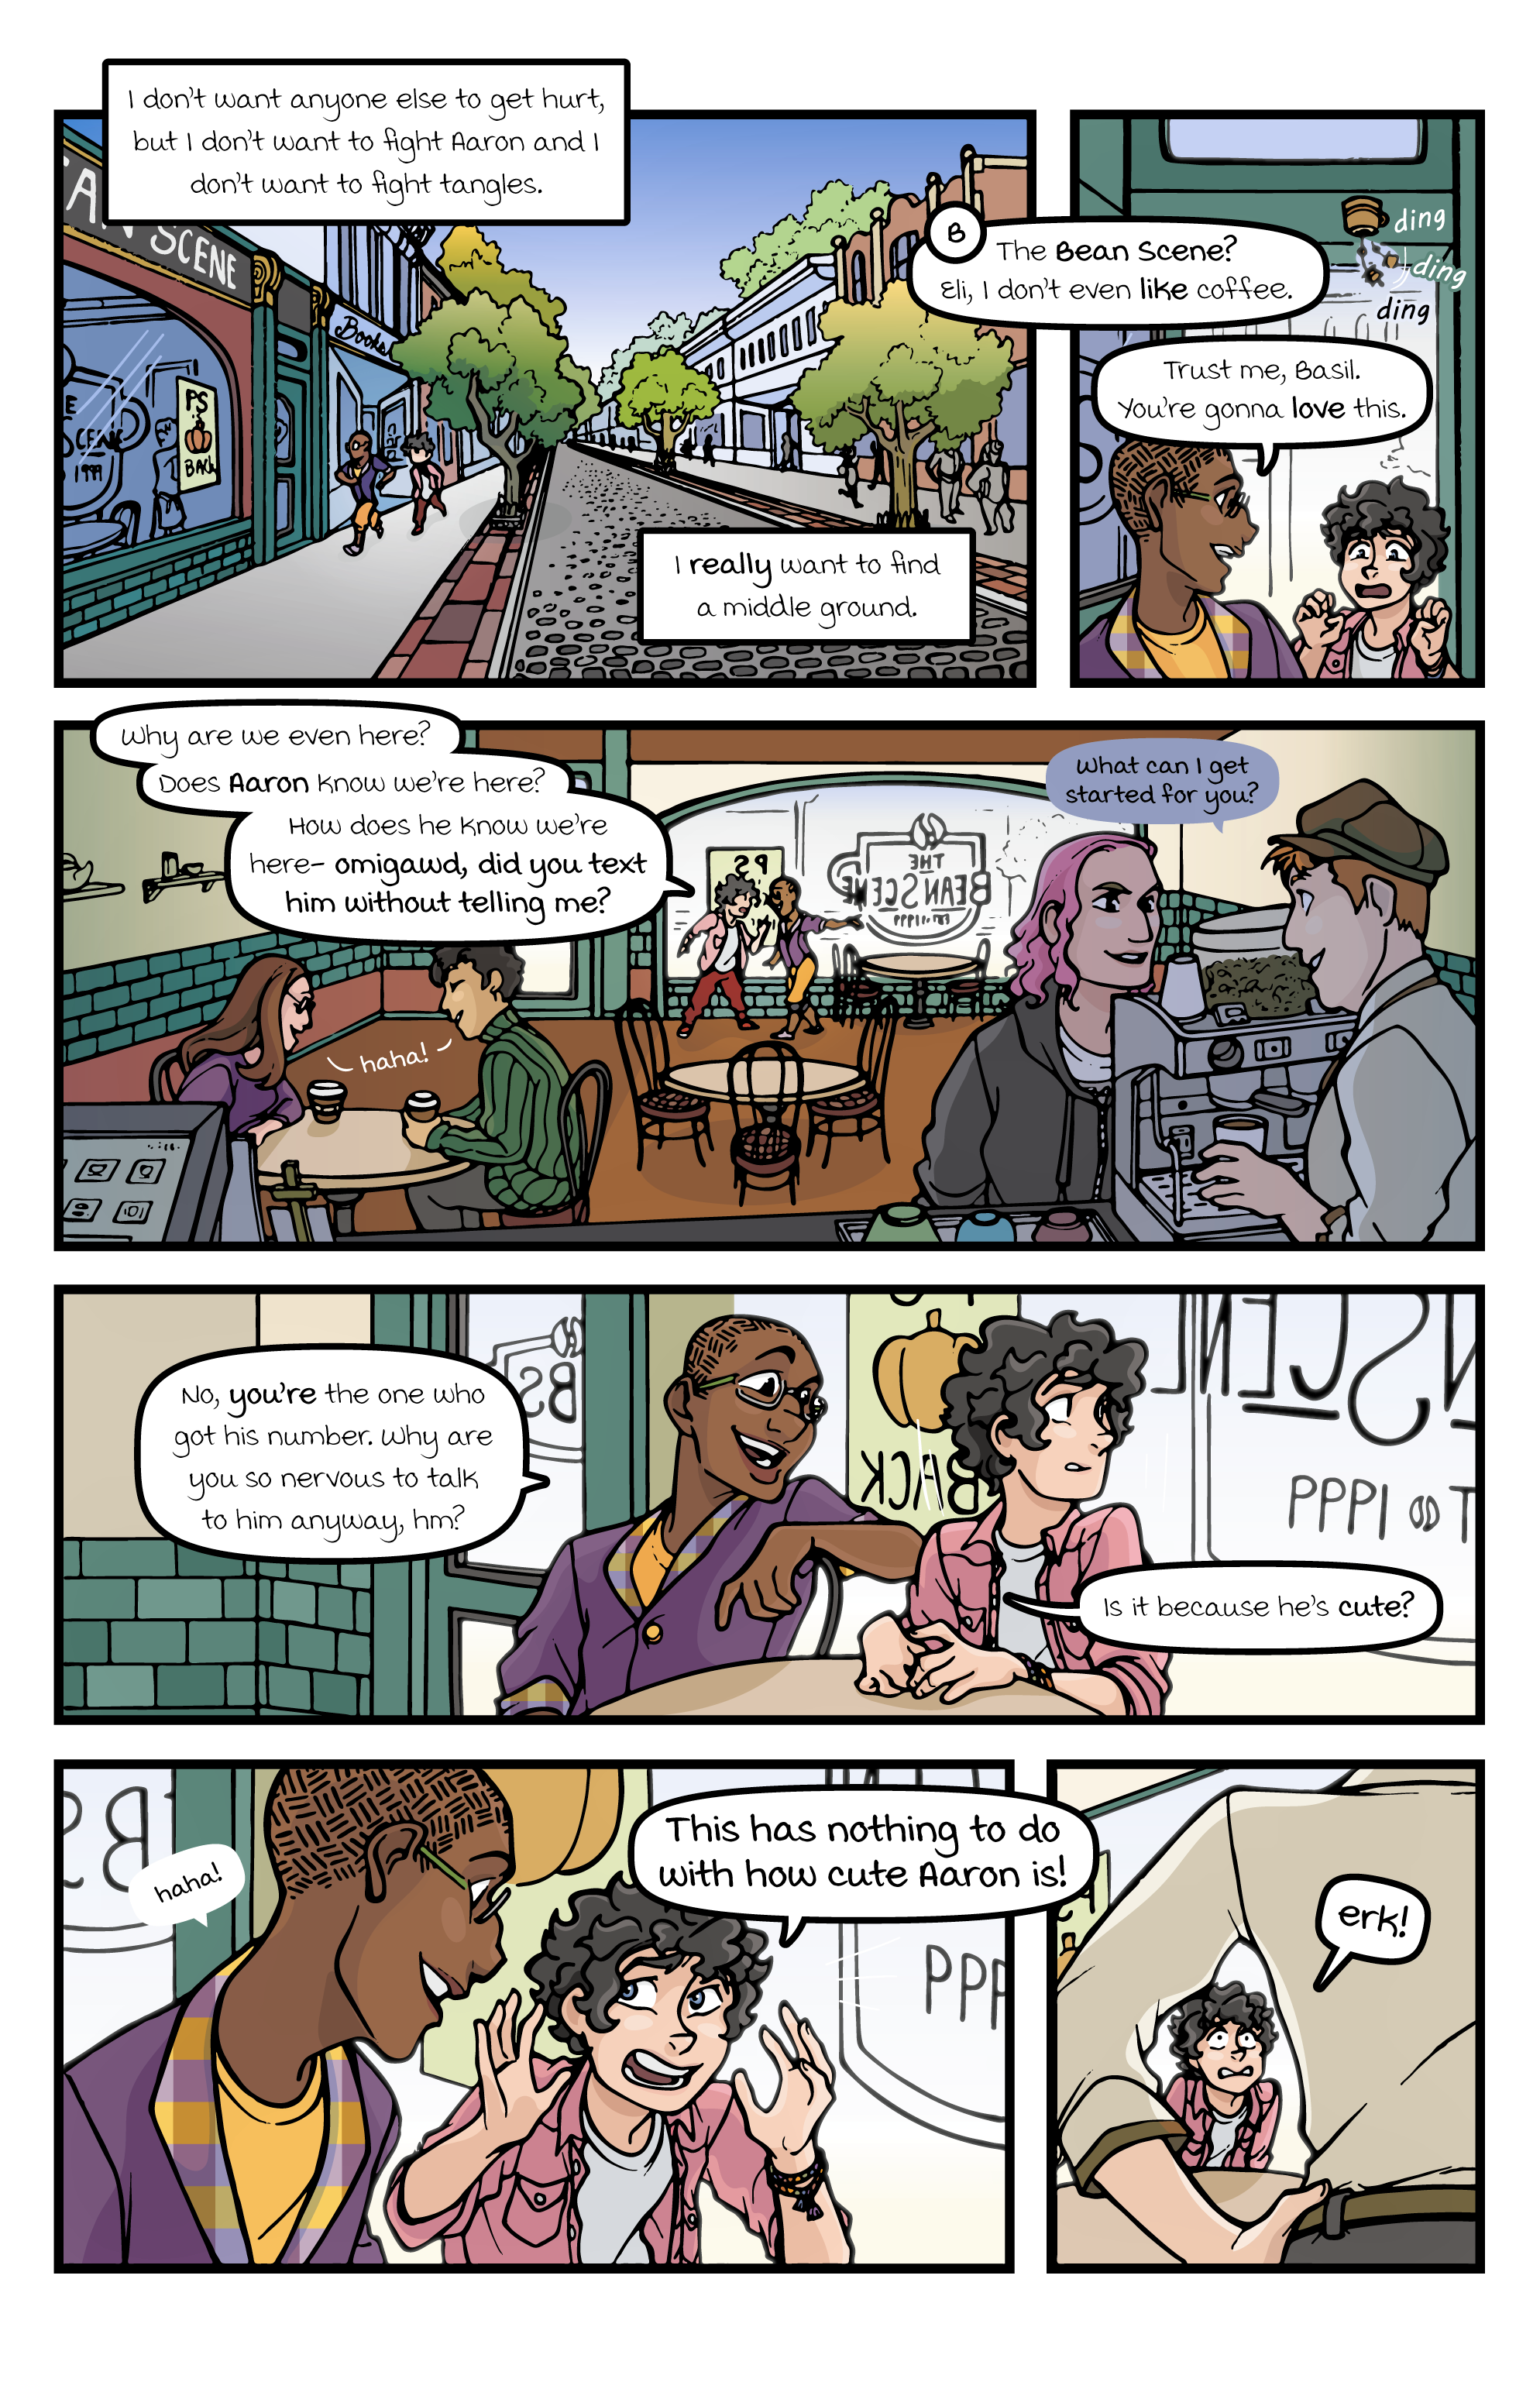 Ch07-P04.png